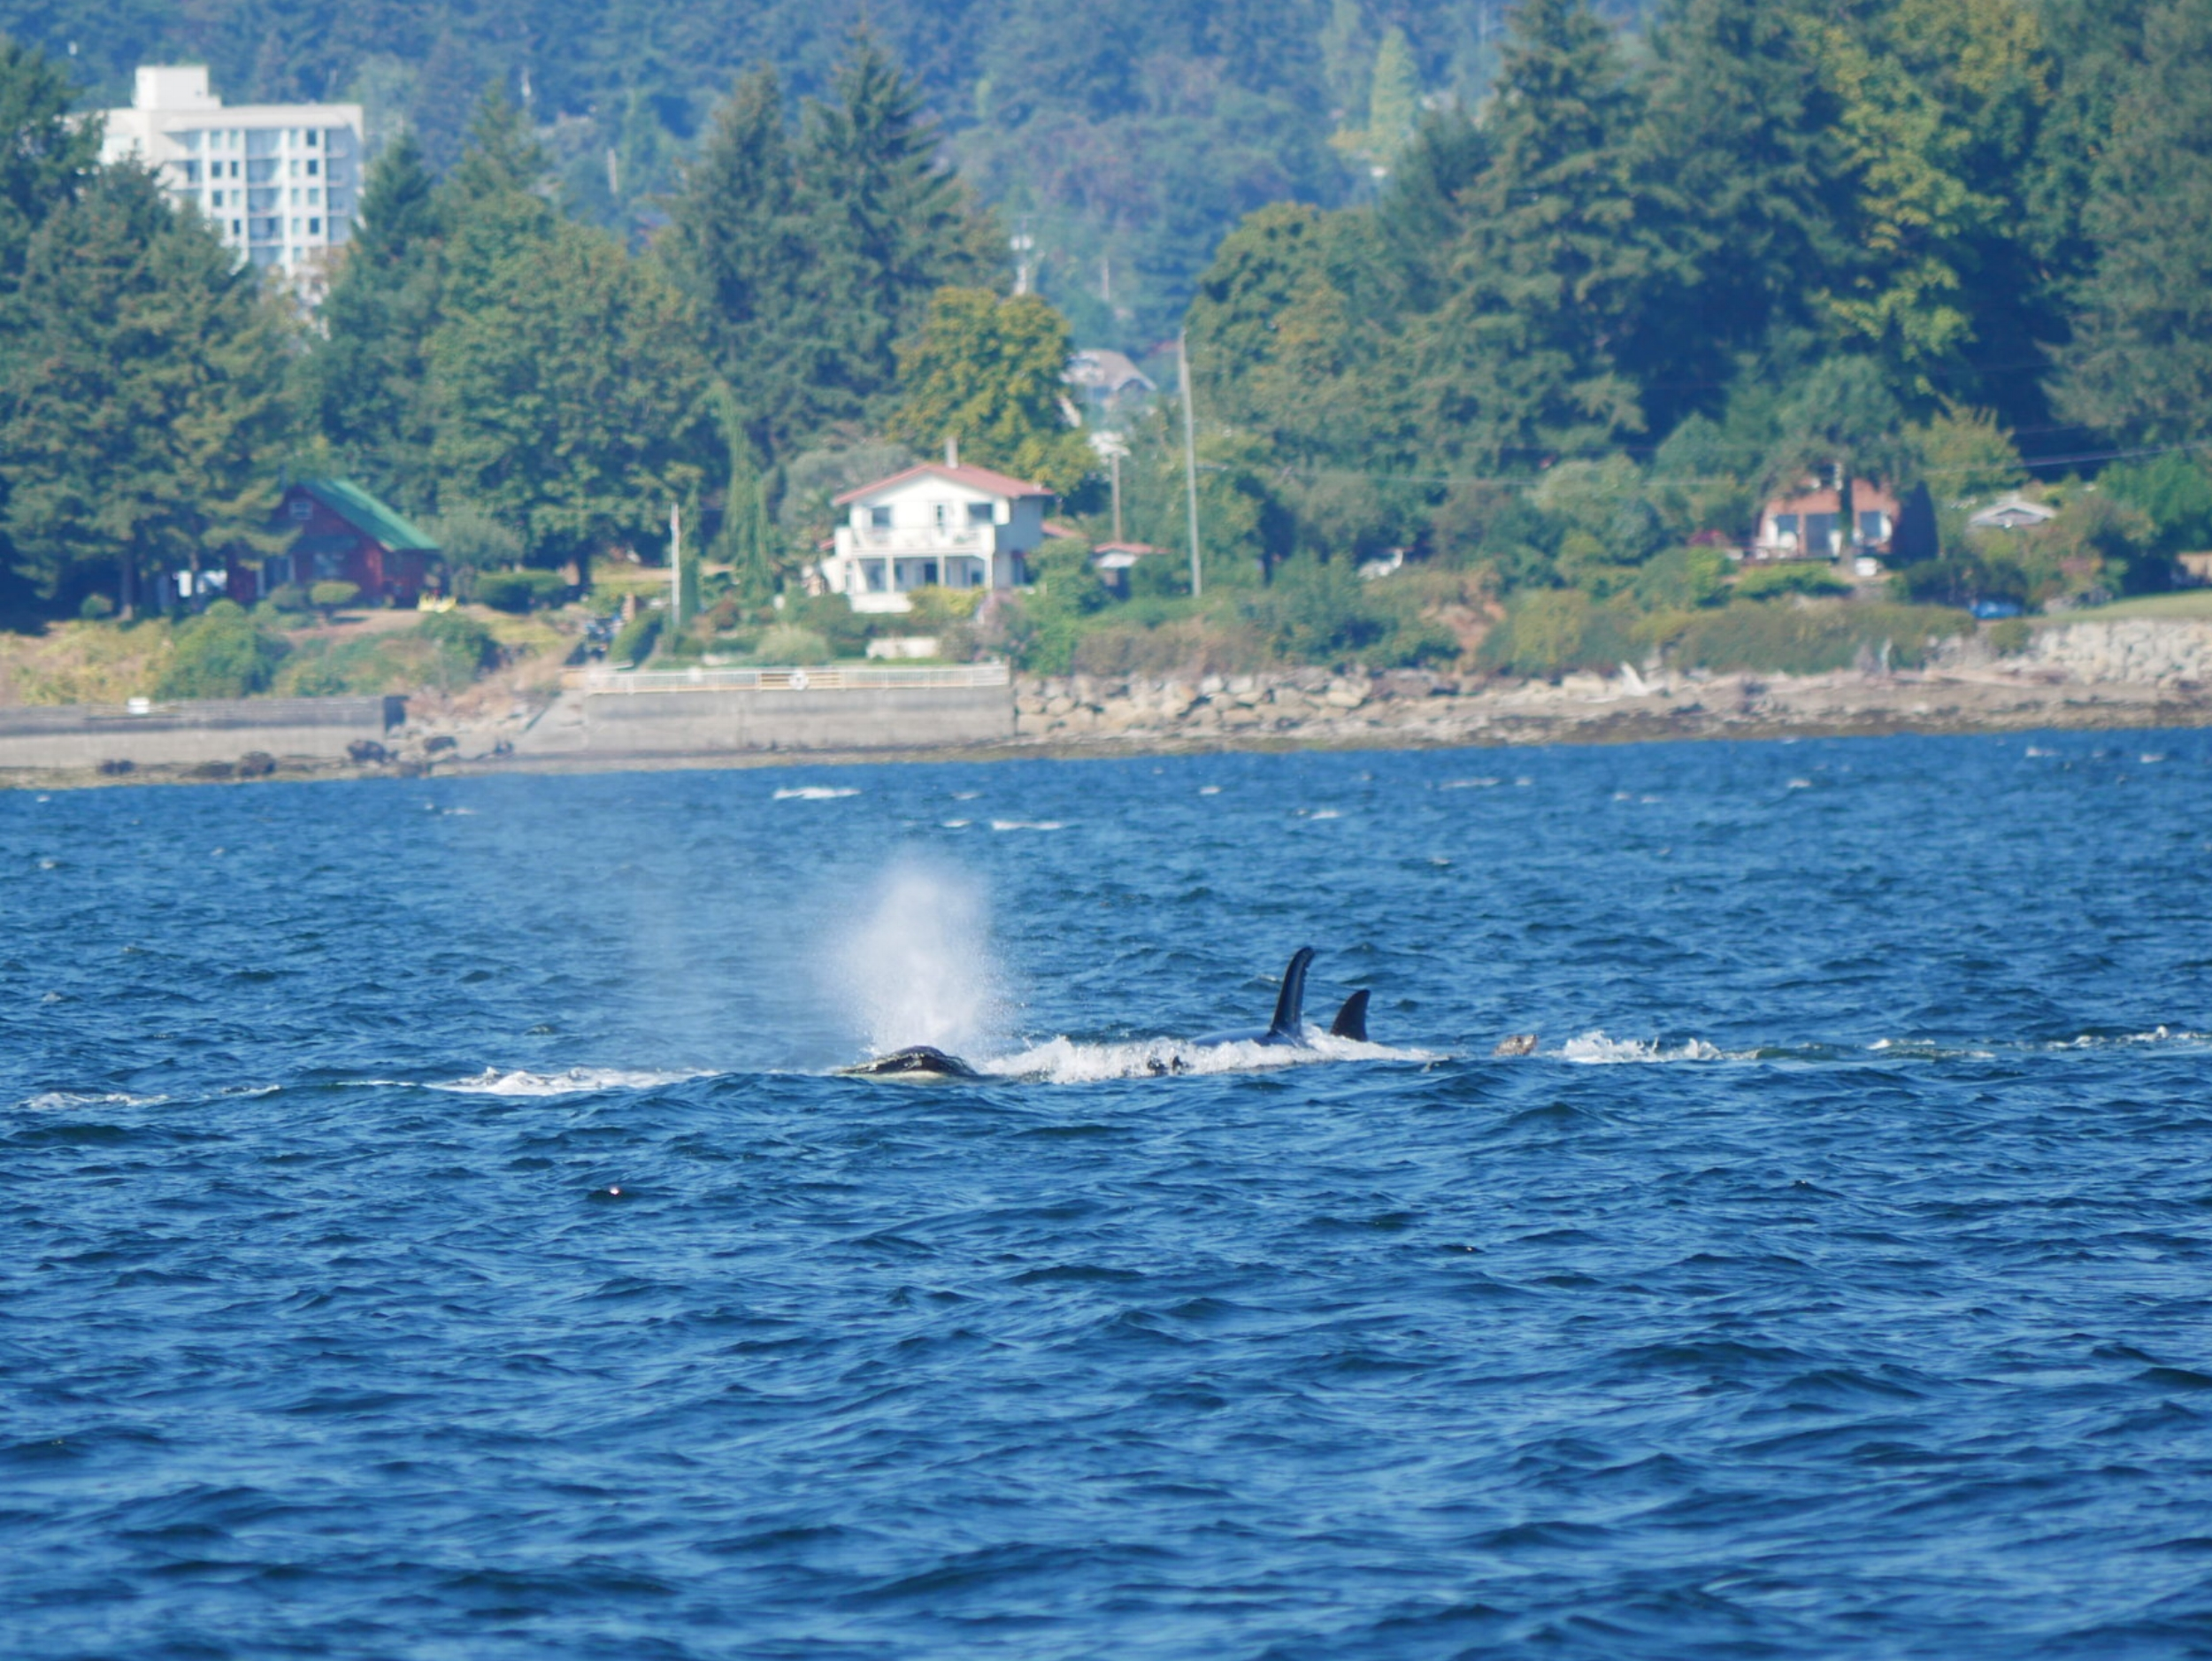 Look to the right of all of the dorsal fins... see the harbour seal?! Photo by Alanna Vivani